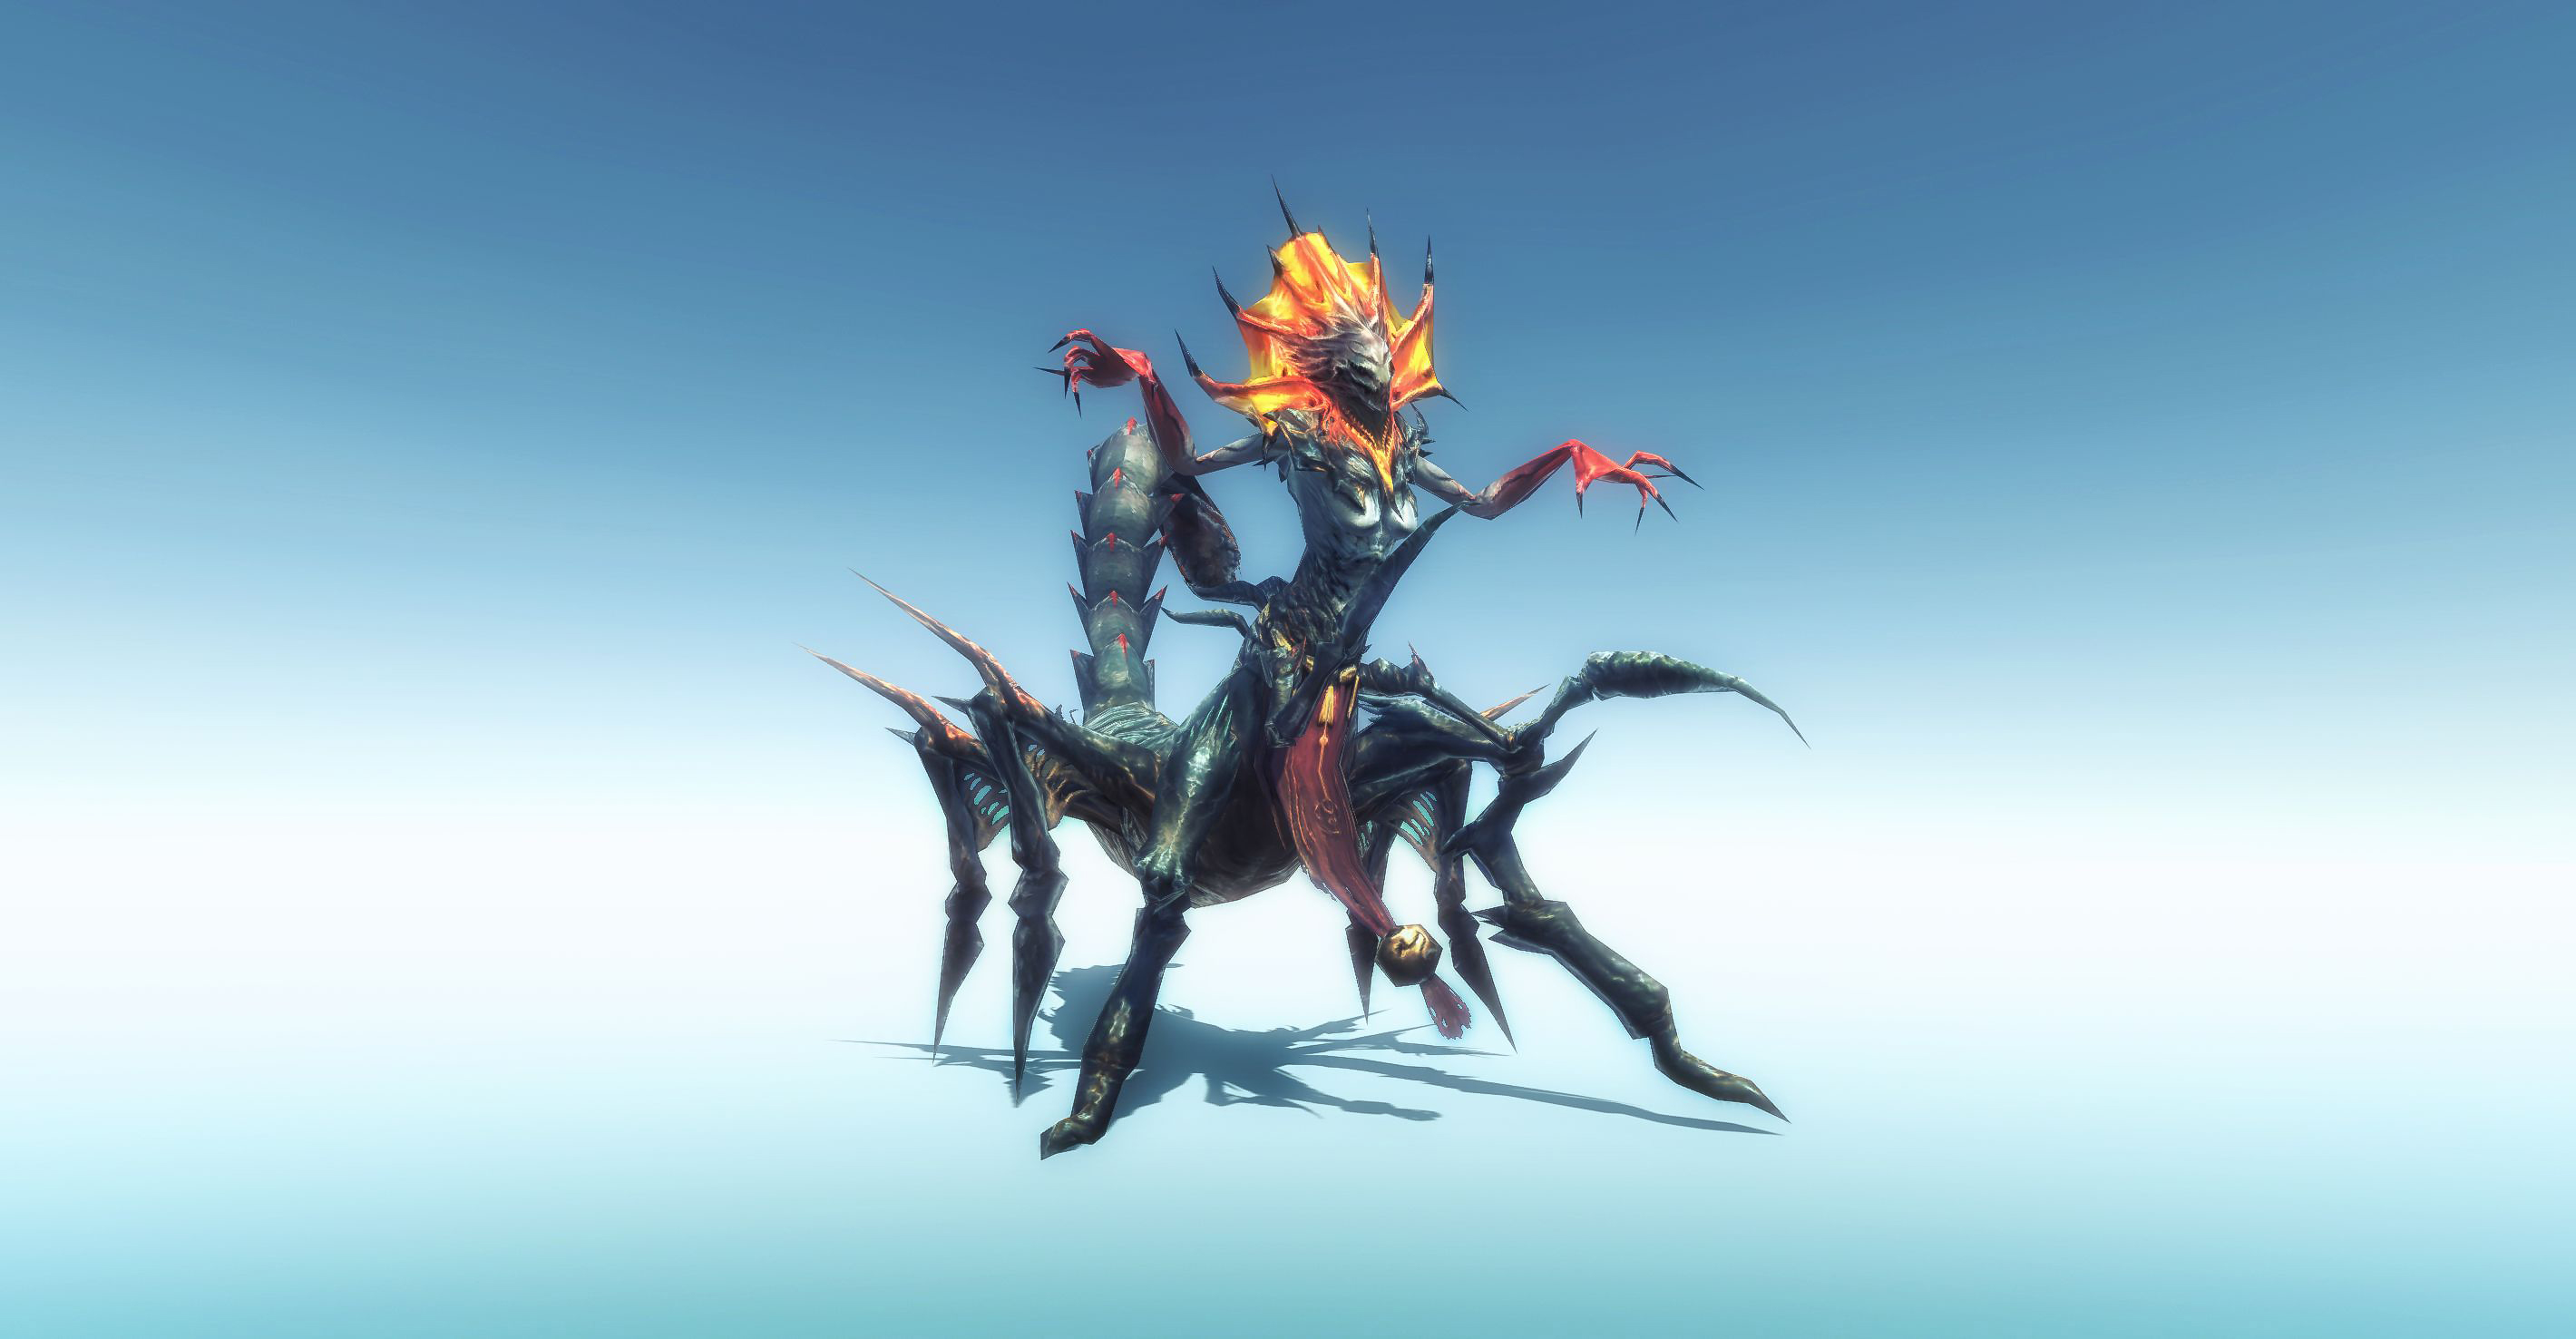 [Asset] Scorpion Queen Monster